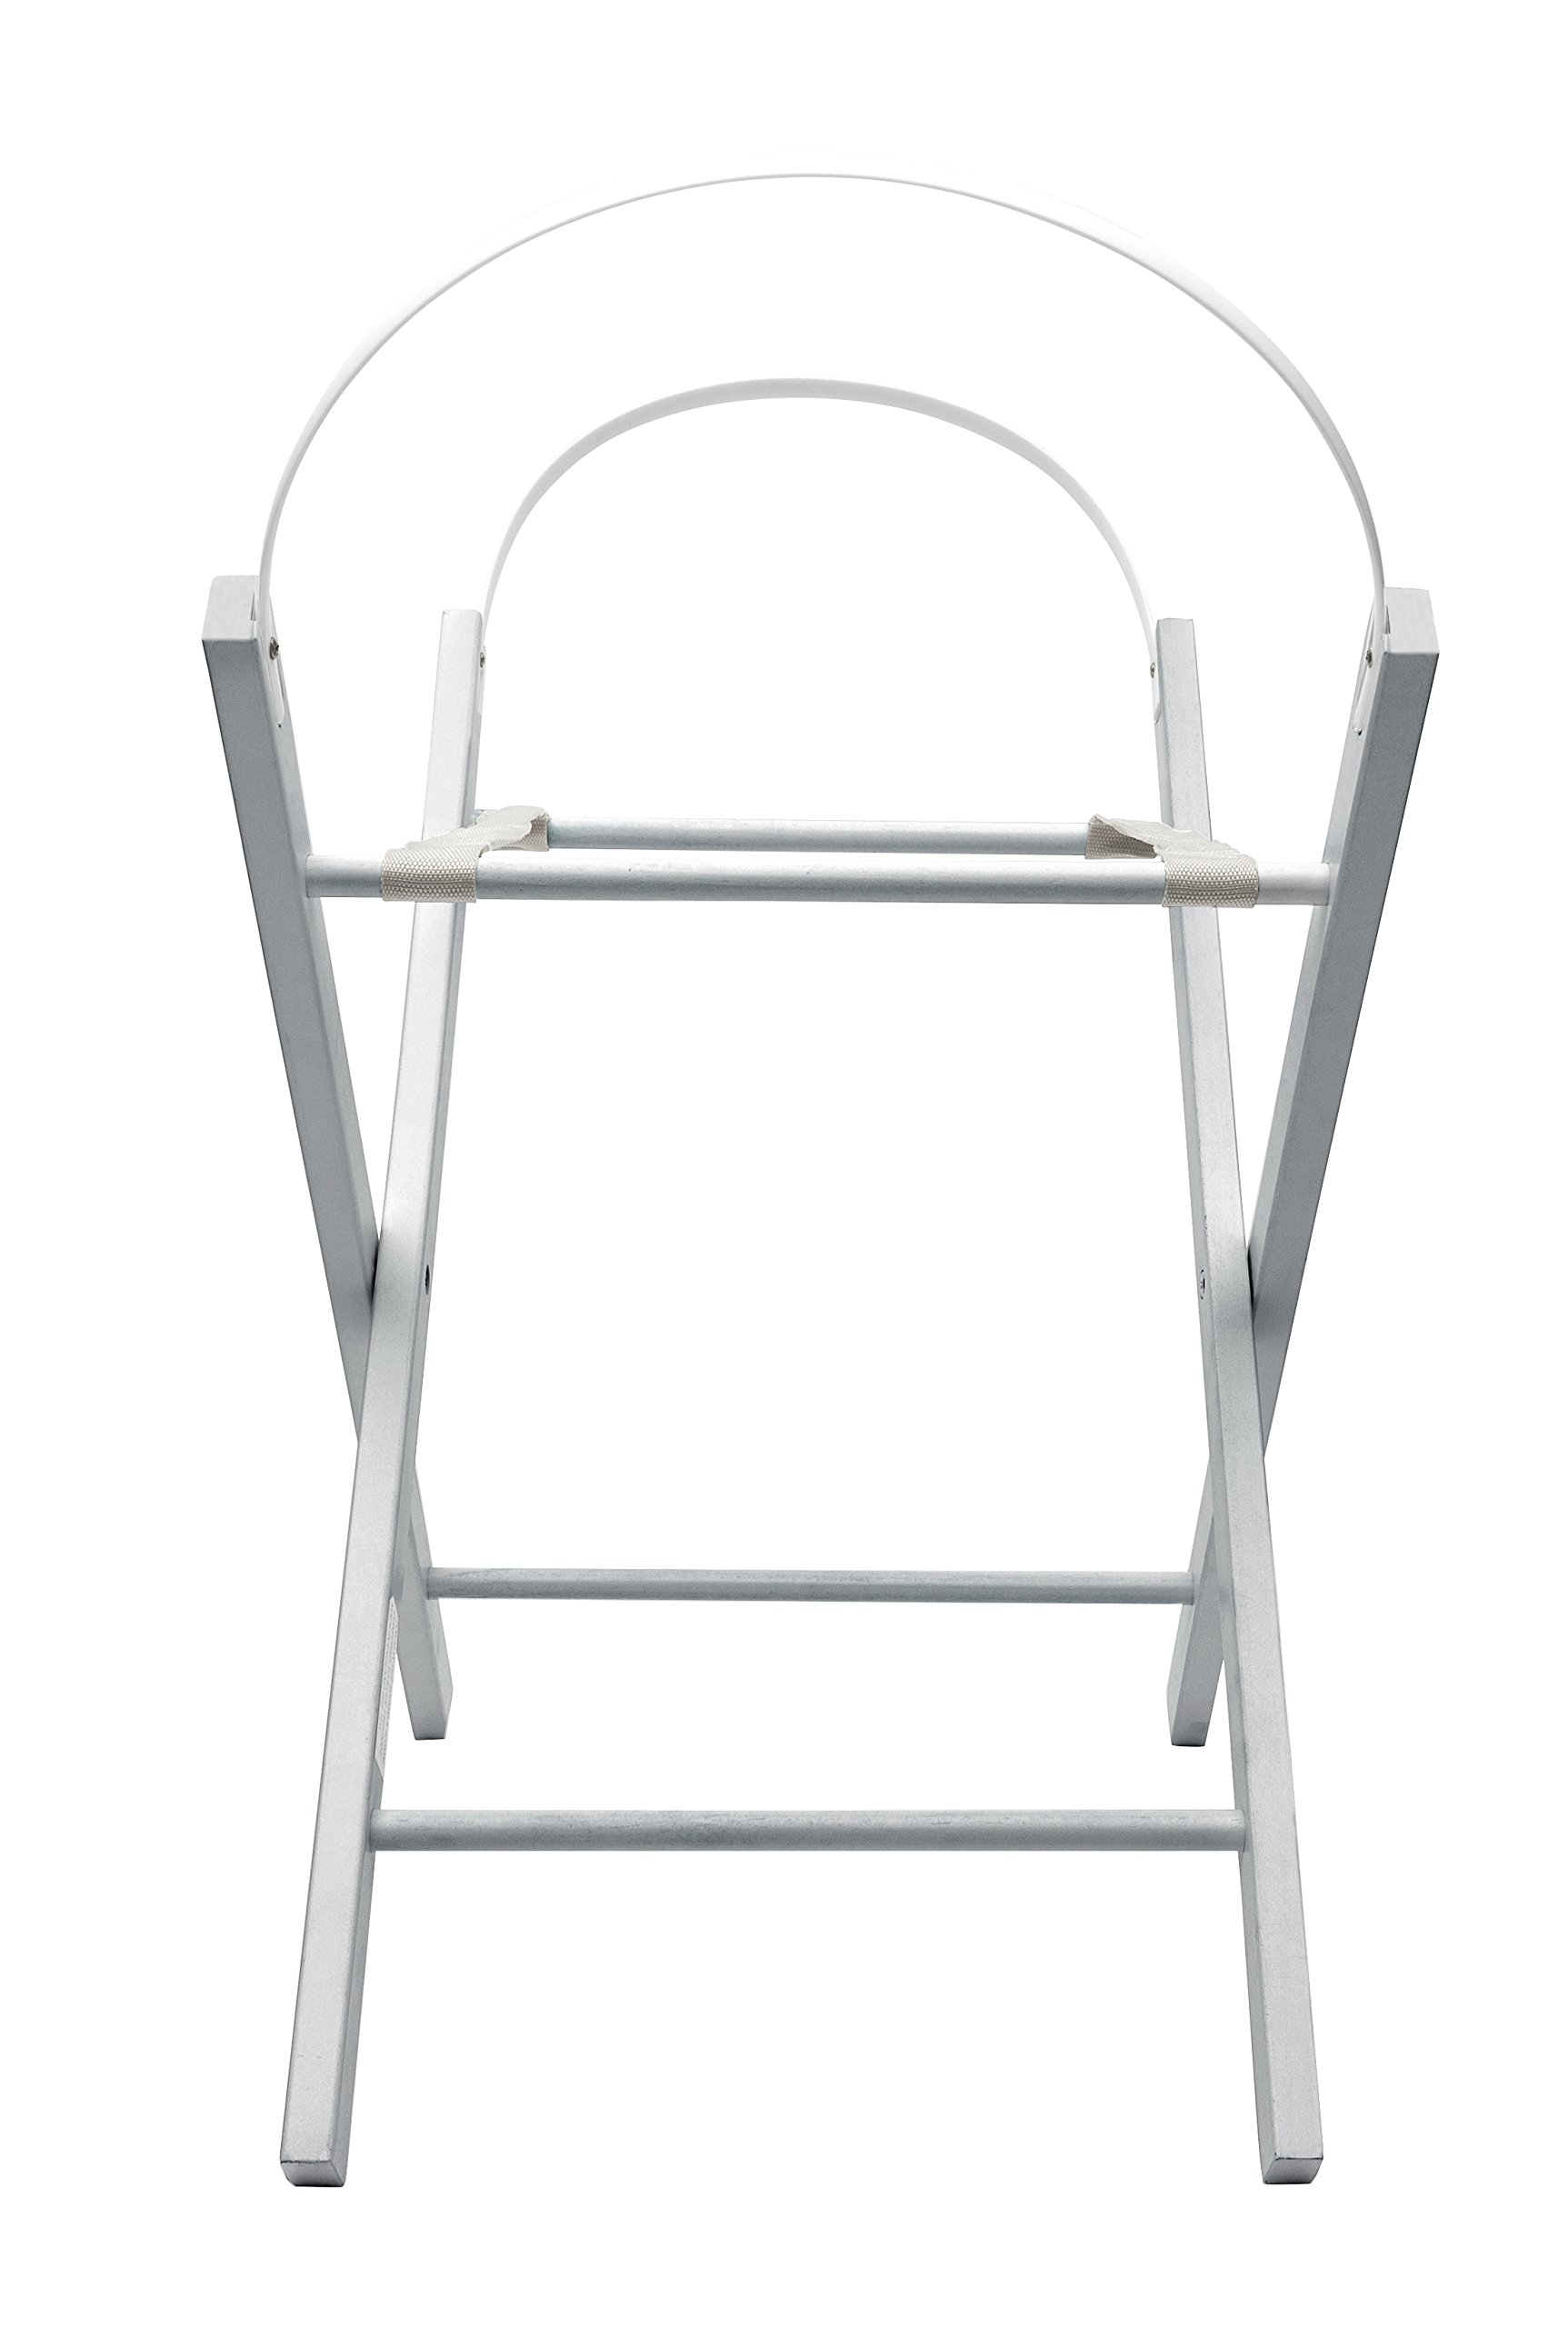 Kinder Valley Opal Folding Stand, Dove Grey Kinder Valley Easy folding for convenience This stand would look perfect with any kinder valley mosses basket or mosses basket pod Self assembly required. easy to set up, instructions and tool supplied 2